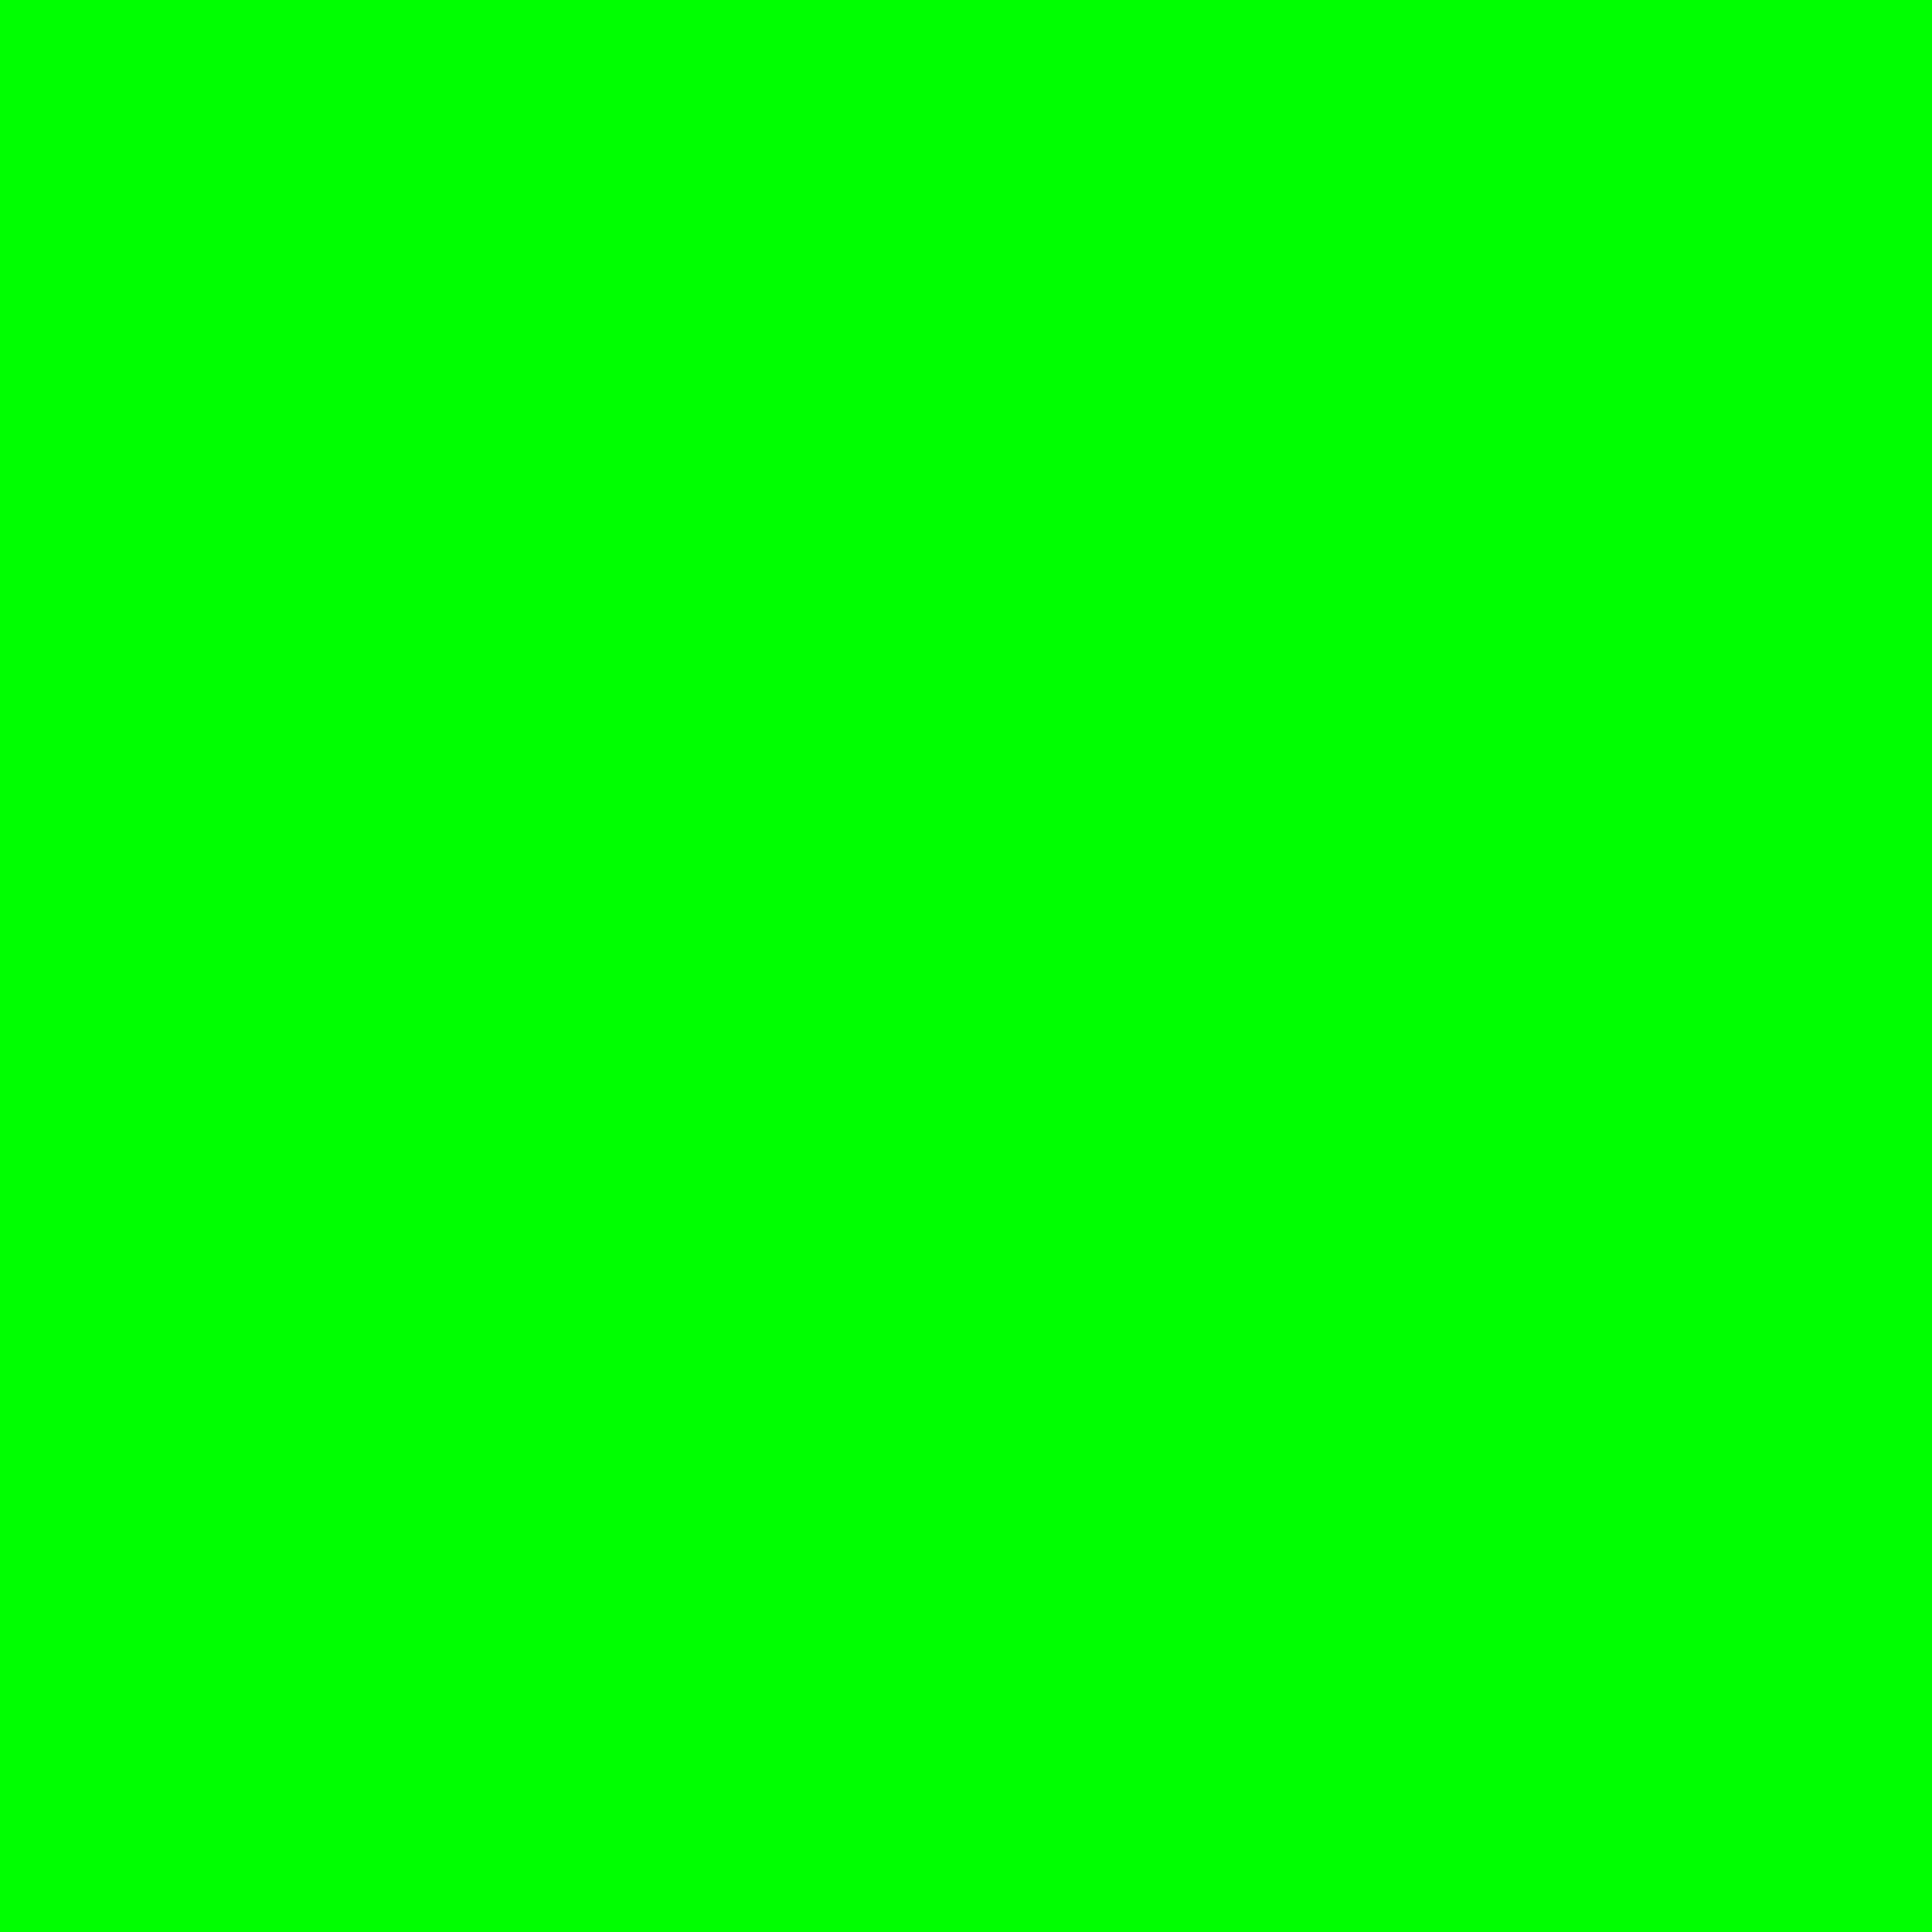 3600x3600 Lime Web Green Solid Color Background